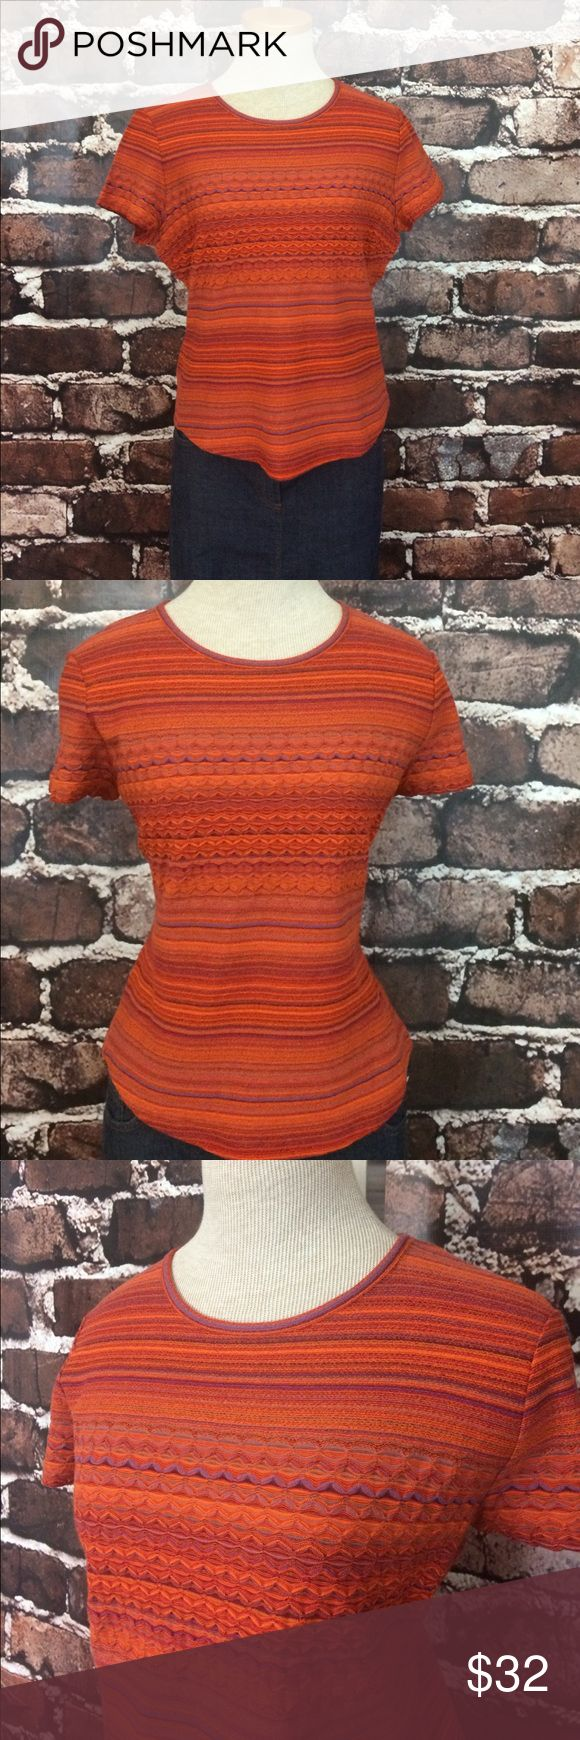 """Missoni short sleeve tee chevron red orange purple Gorgeous short sleeve top in classic vibrant colors. Shades of orange, red, purple, and periwinkle in horizontal stripes and a chevron pattern across chest. Rounded neckline. Rounded bottom hem. Fabric has a bit of stretch. Excellent condition. Fabric and size tag has been removed. I️ estimate it as a small. My mannequin is an xs. Use measurements for sizing. 22"""" length at longest. Armpit to armpit is 19"""". Could fit a petite possibly. M by…"""